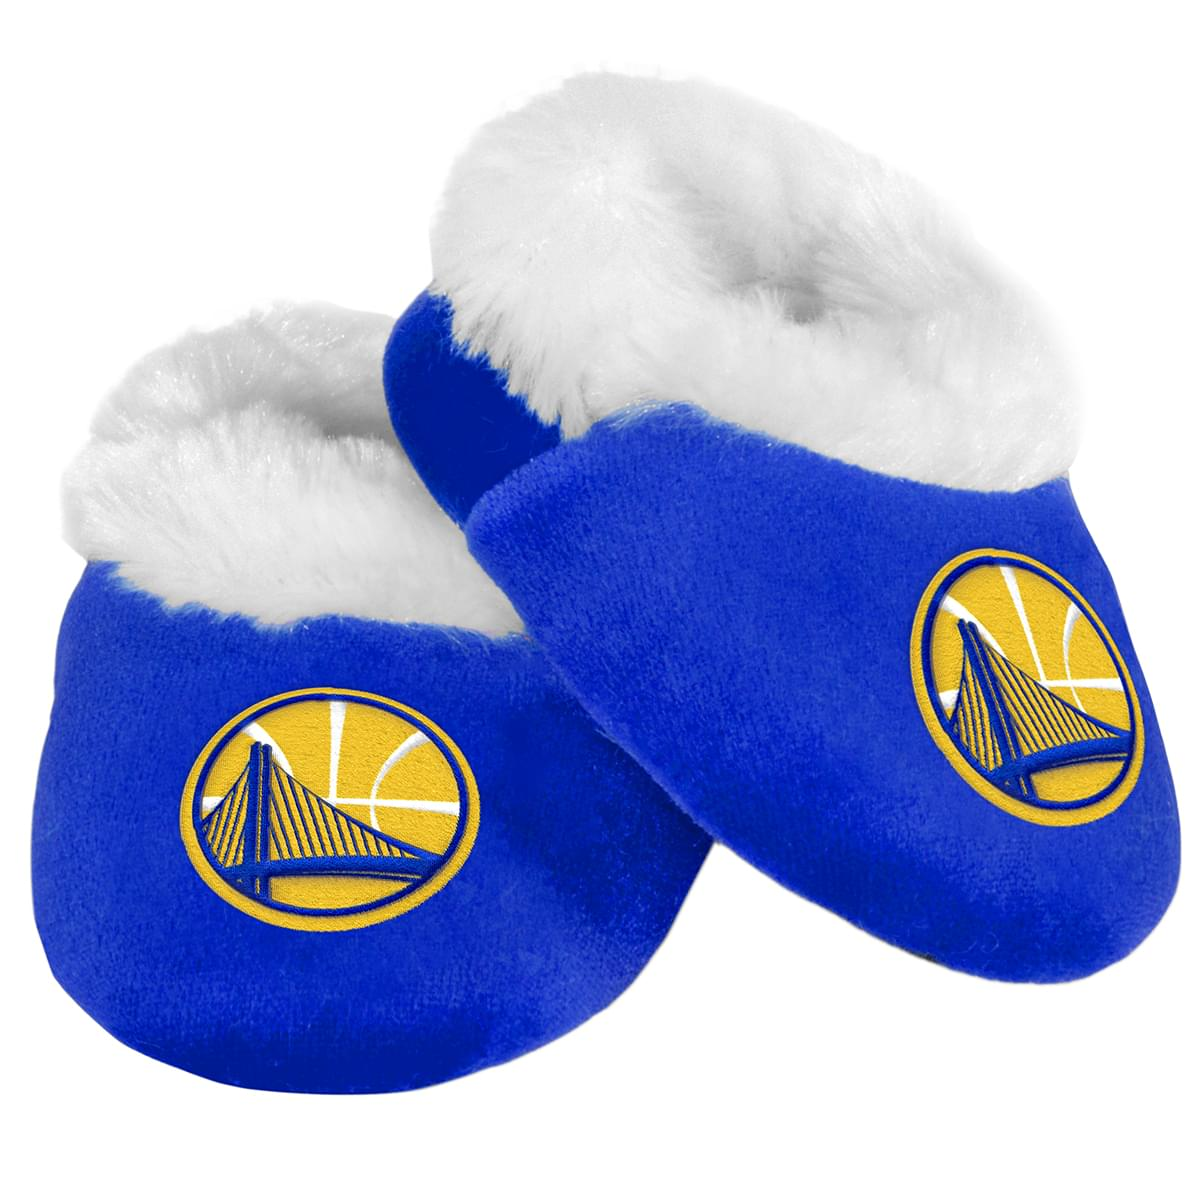 8baeb4ece9f Golden State Warriors NBA Baby Bootie Slipper